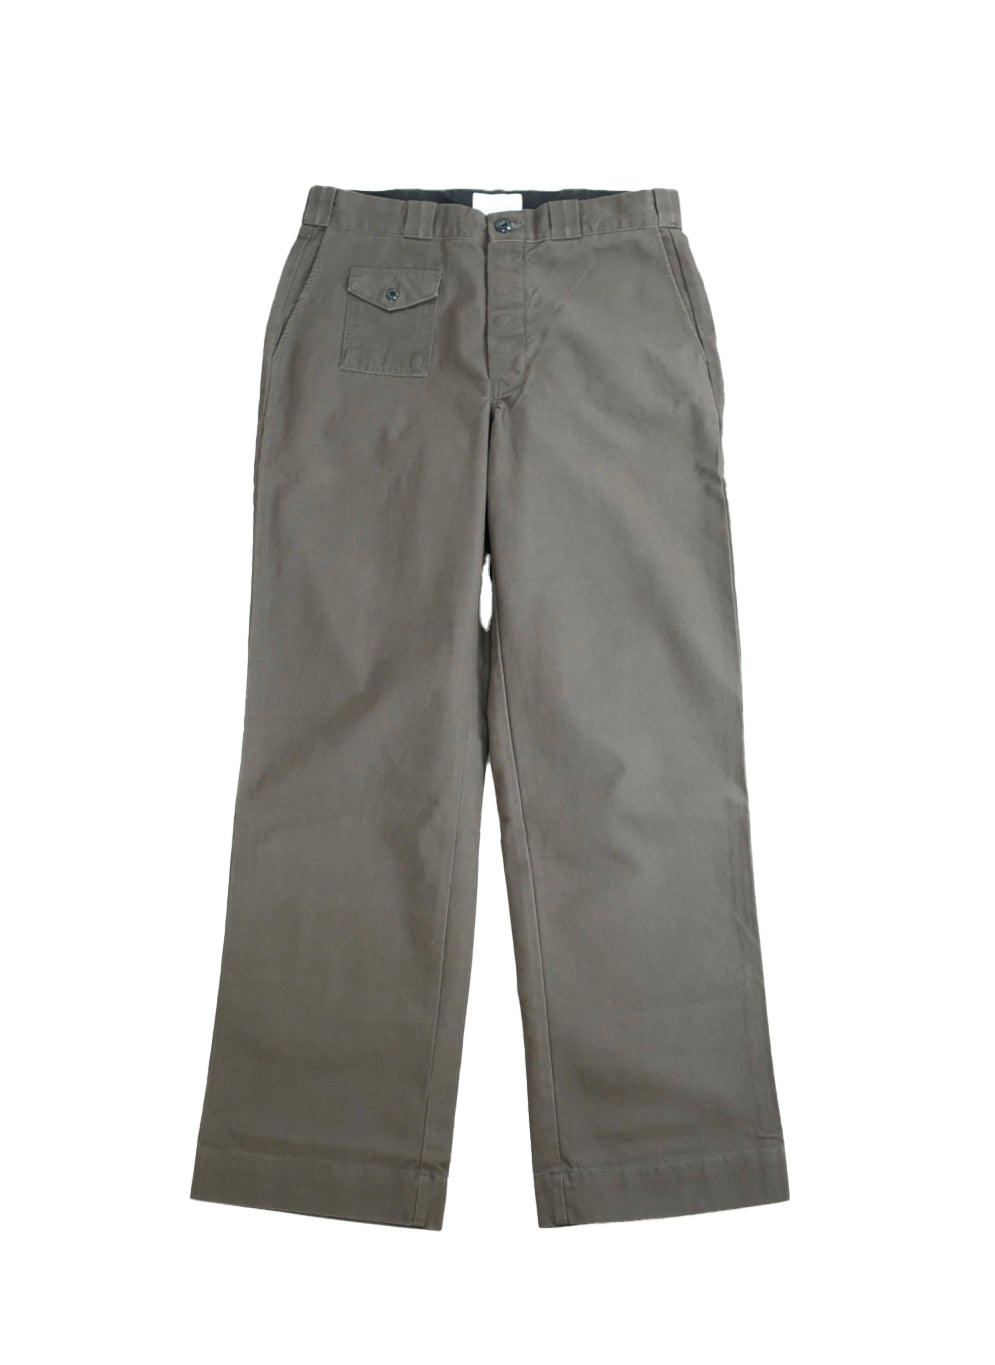 PALMER TRADING COMPANY FOR DICKIES / TOBACCO POCKET PANTS